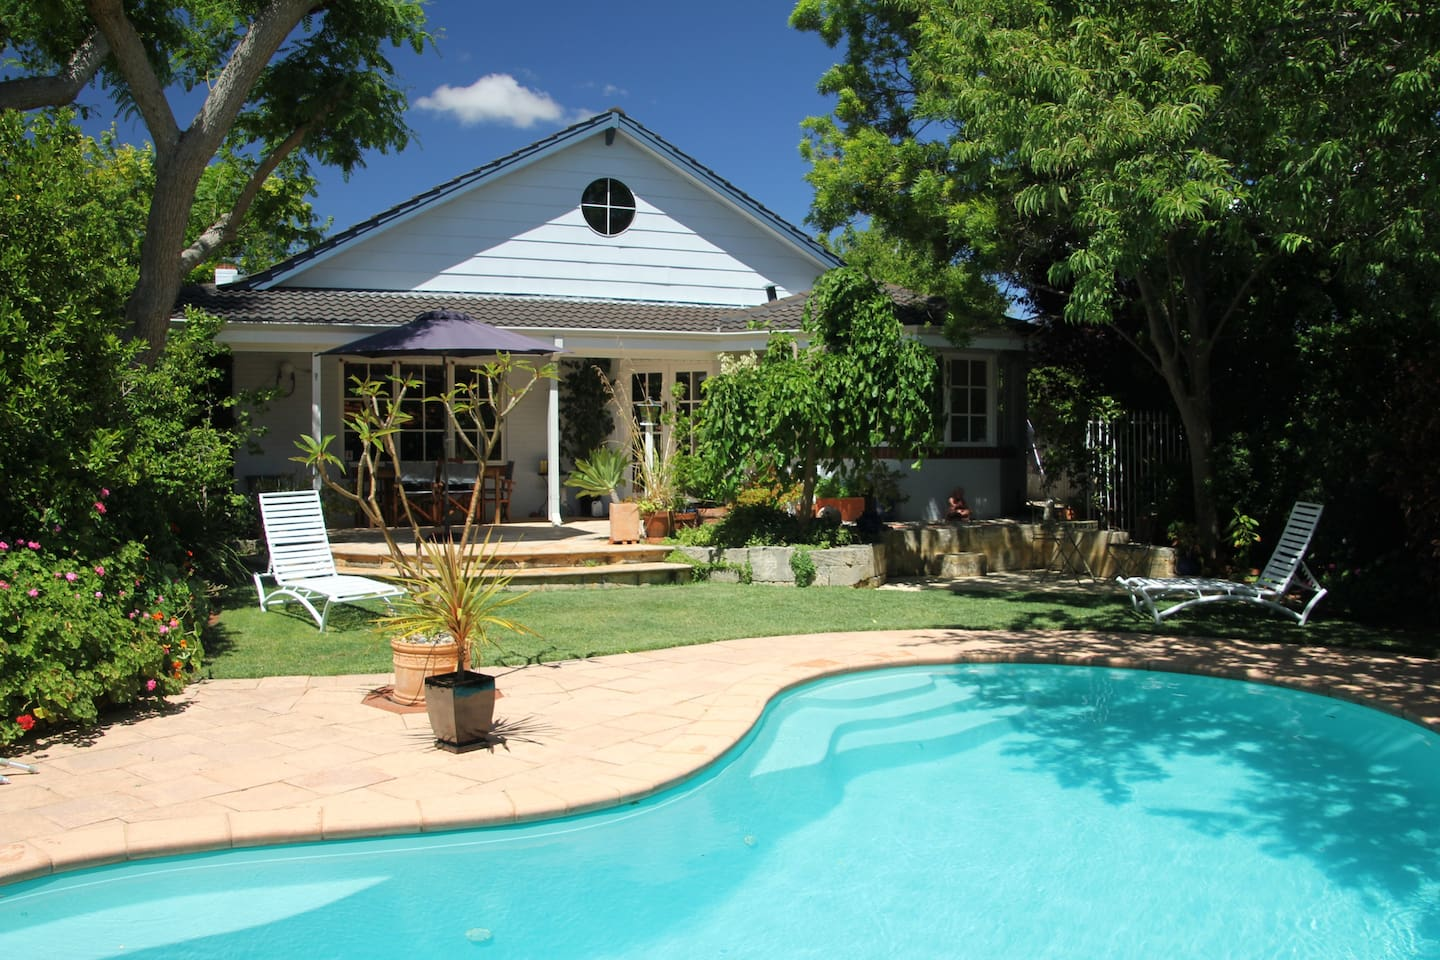 Perth - relaxing home and garden